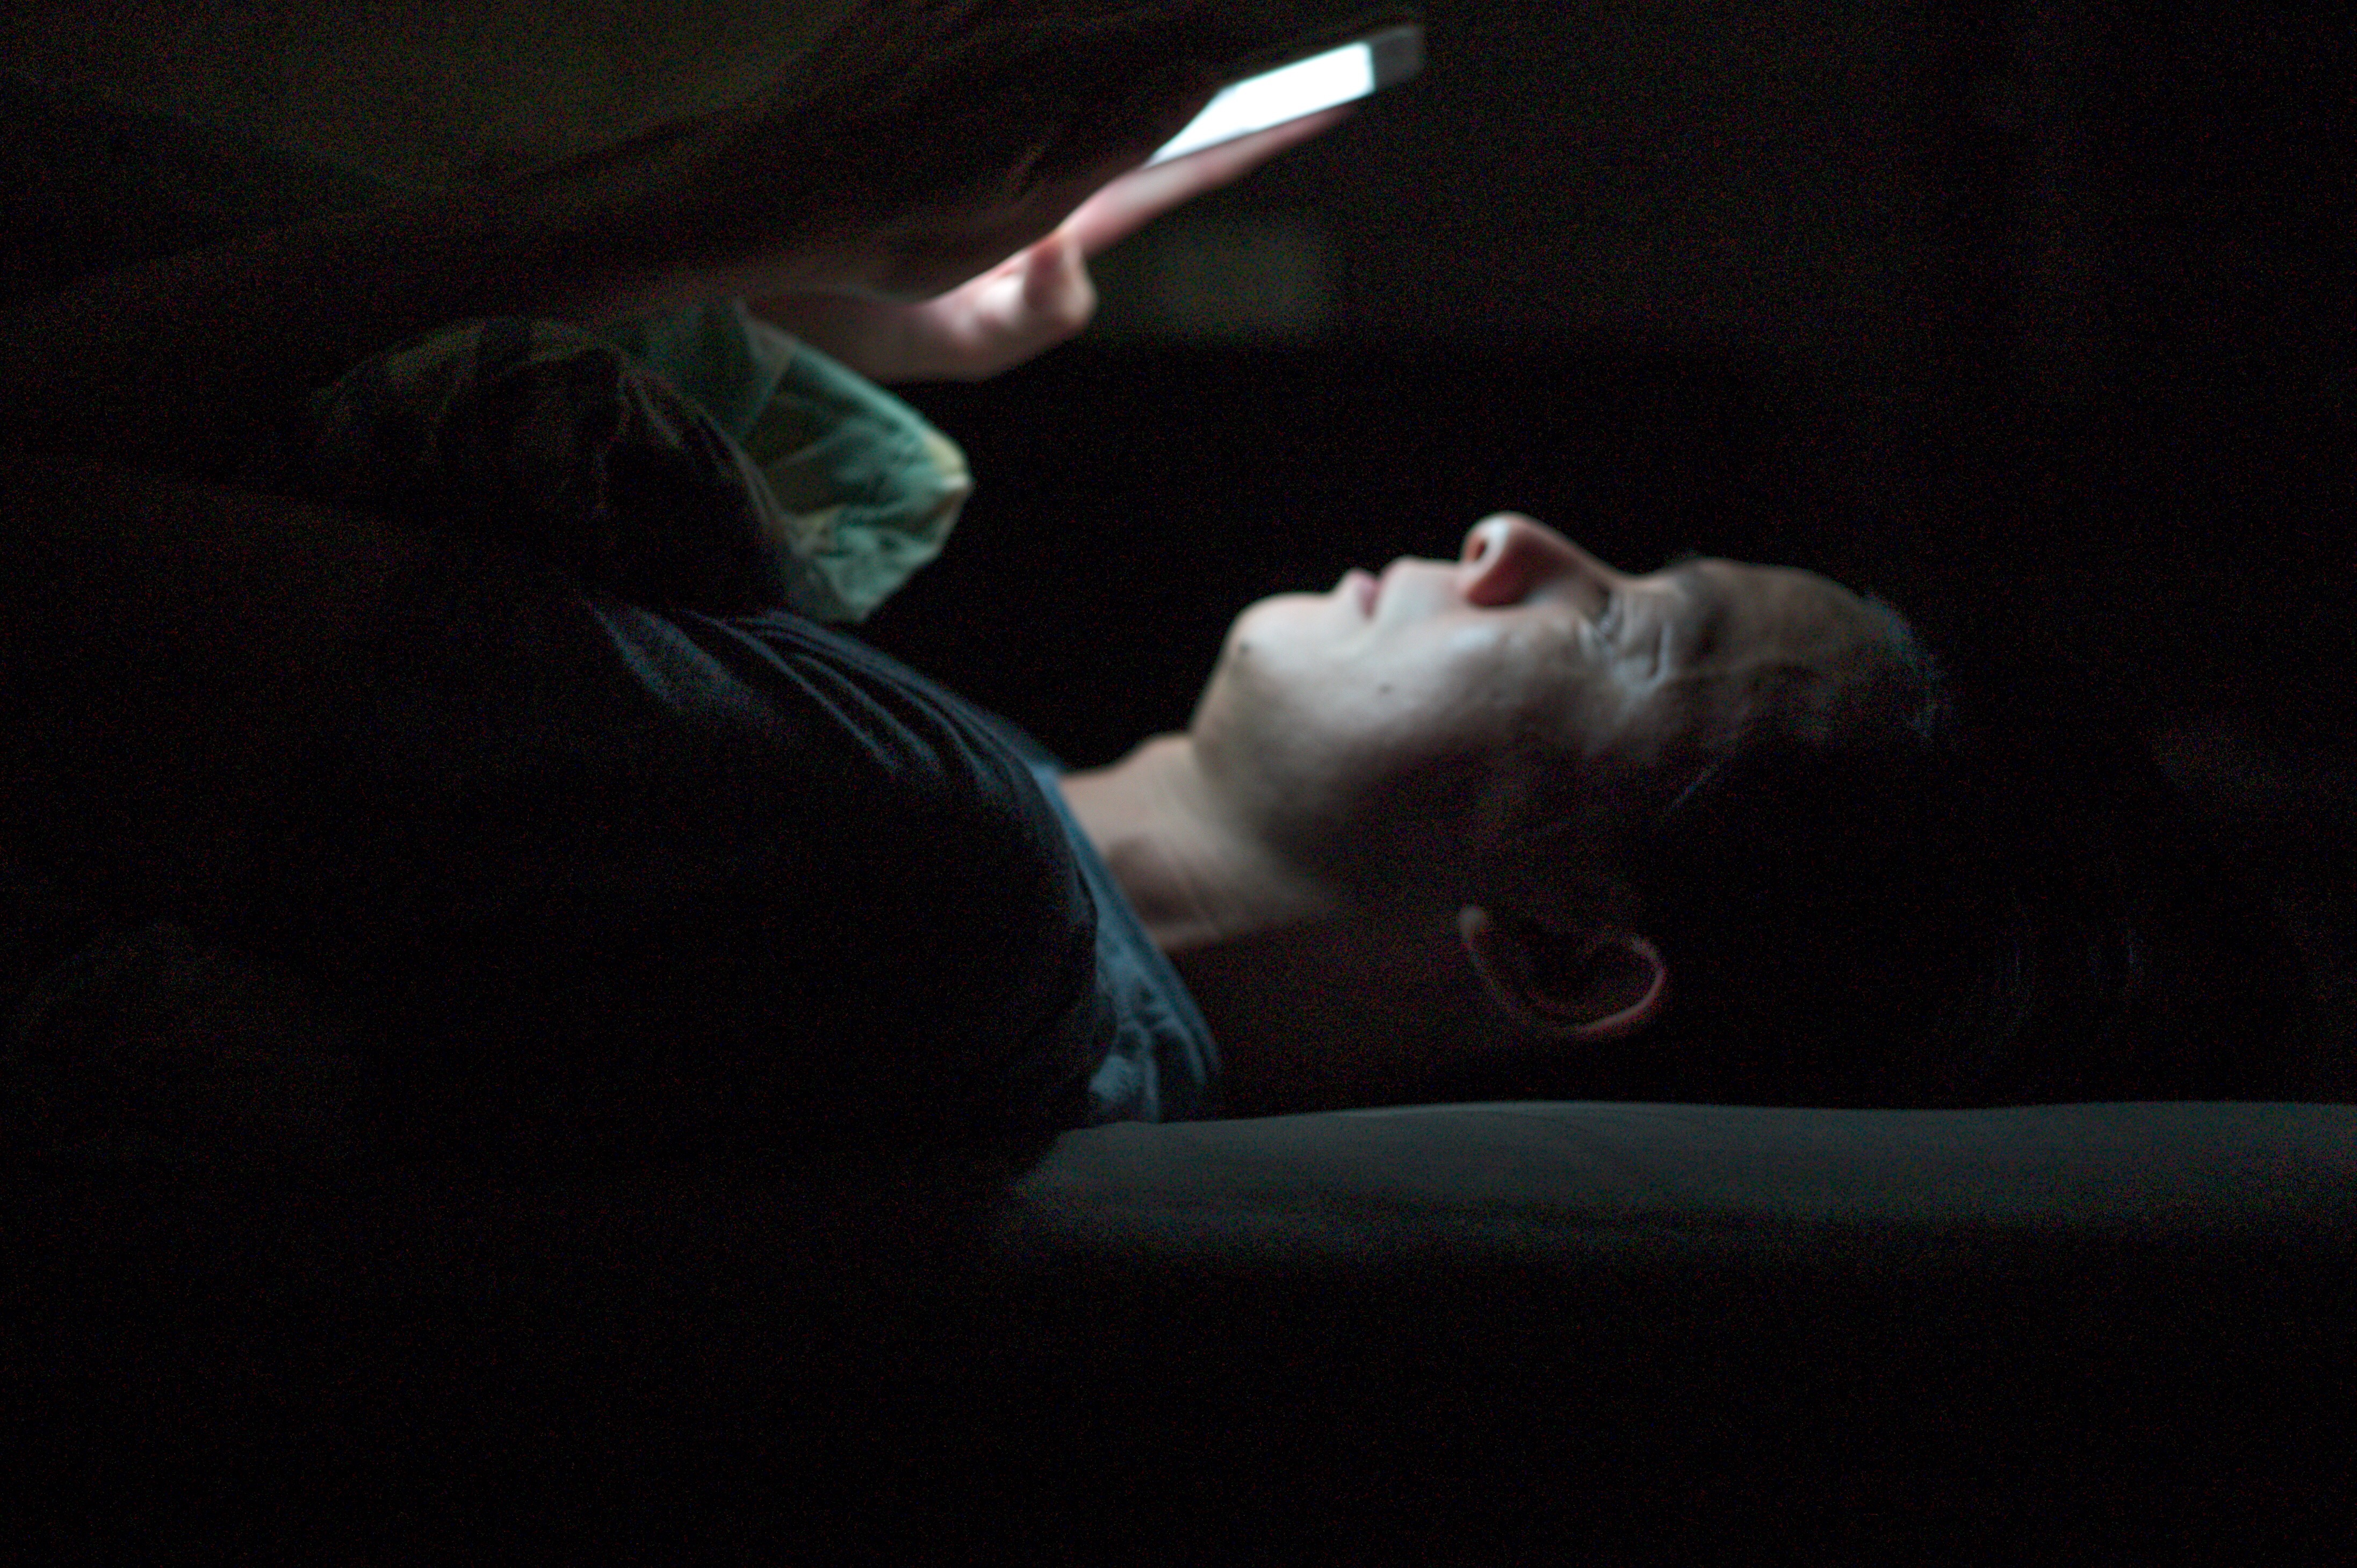 A man's face lighted by a smartphone in a dark room